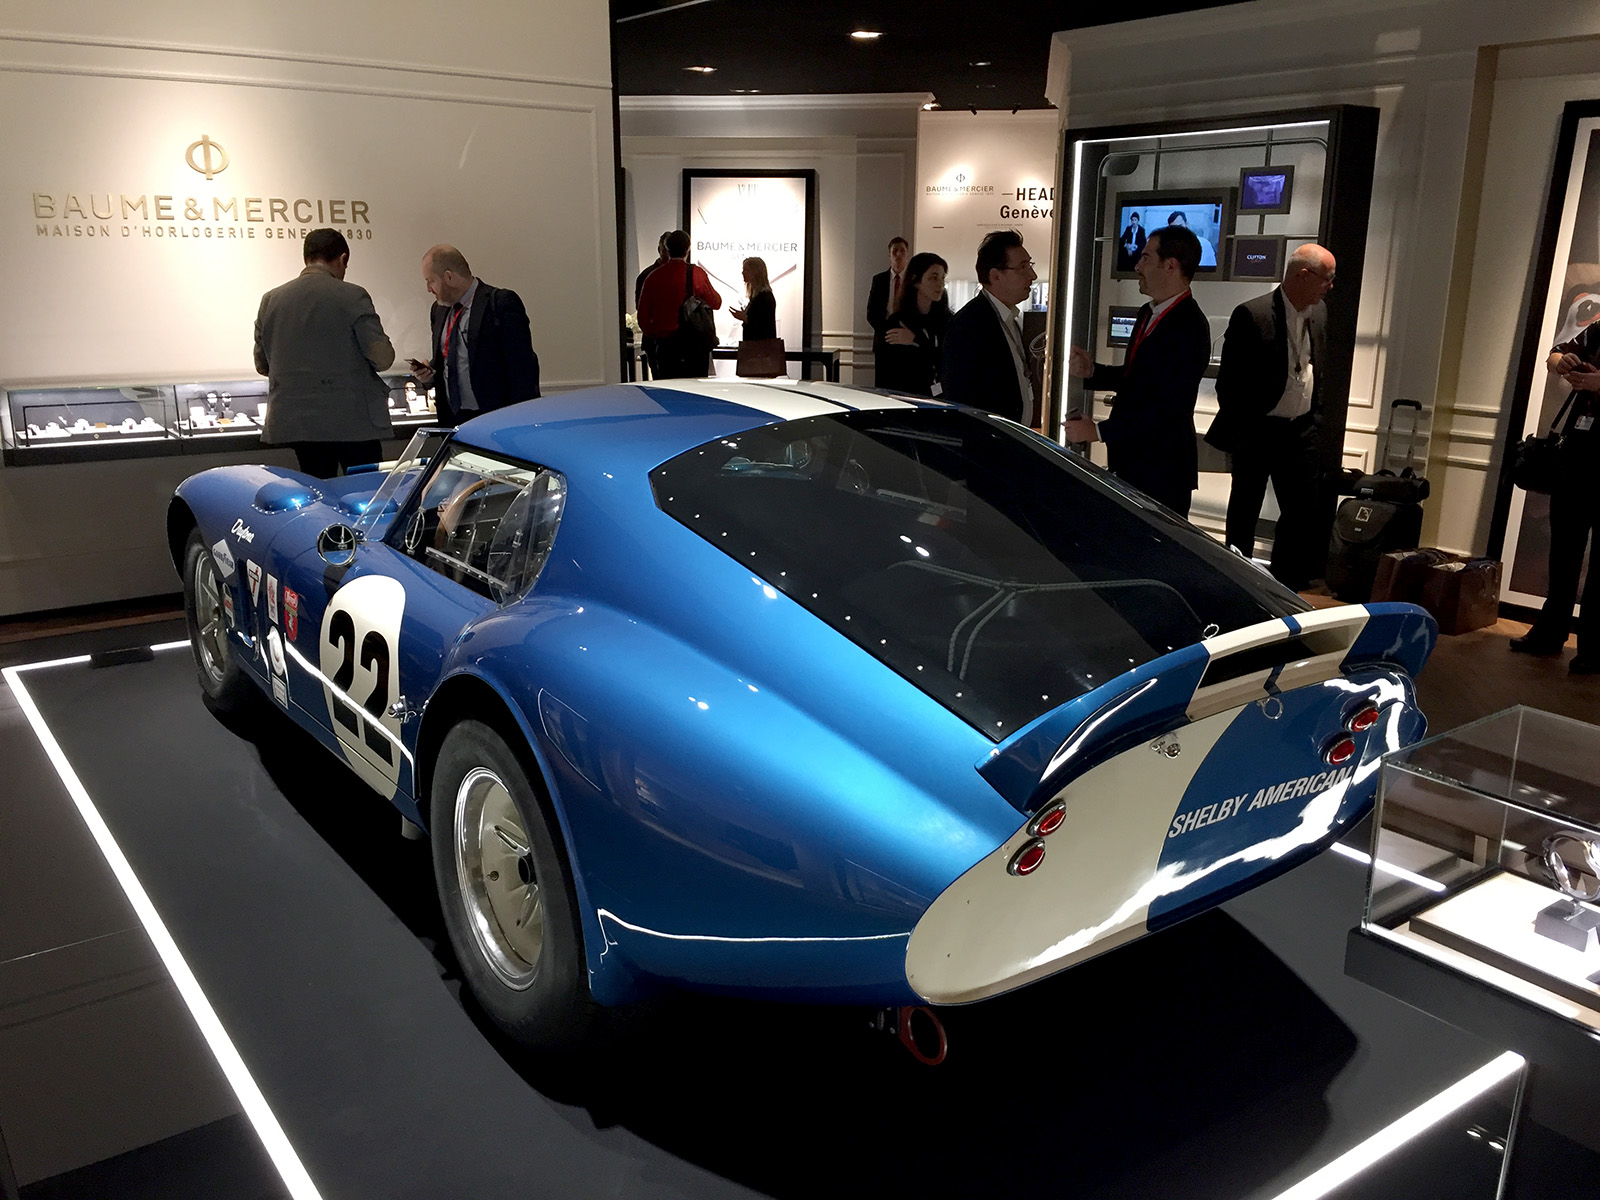 Baume & Mercier - SIHH 2017 - Shelby Cobra Daytona Coupe 2